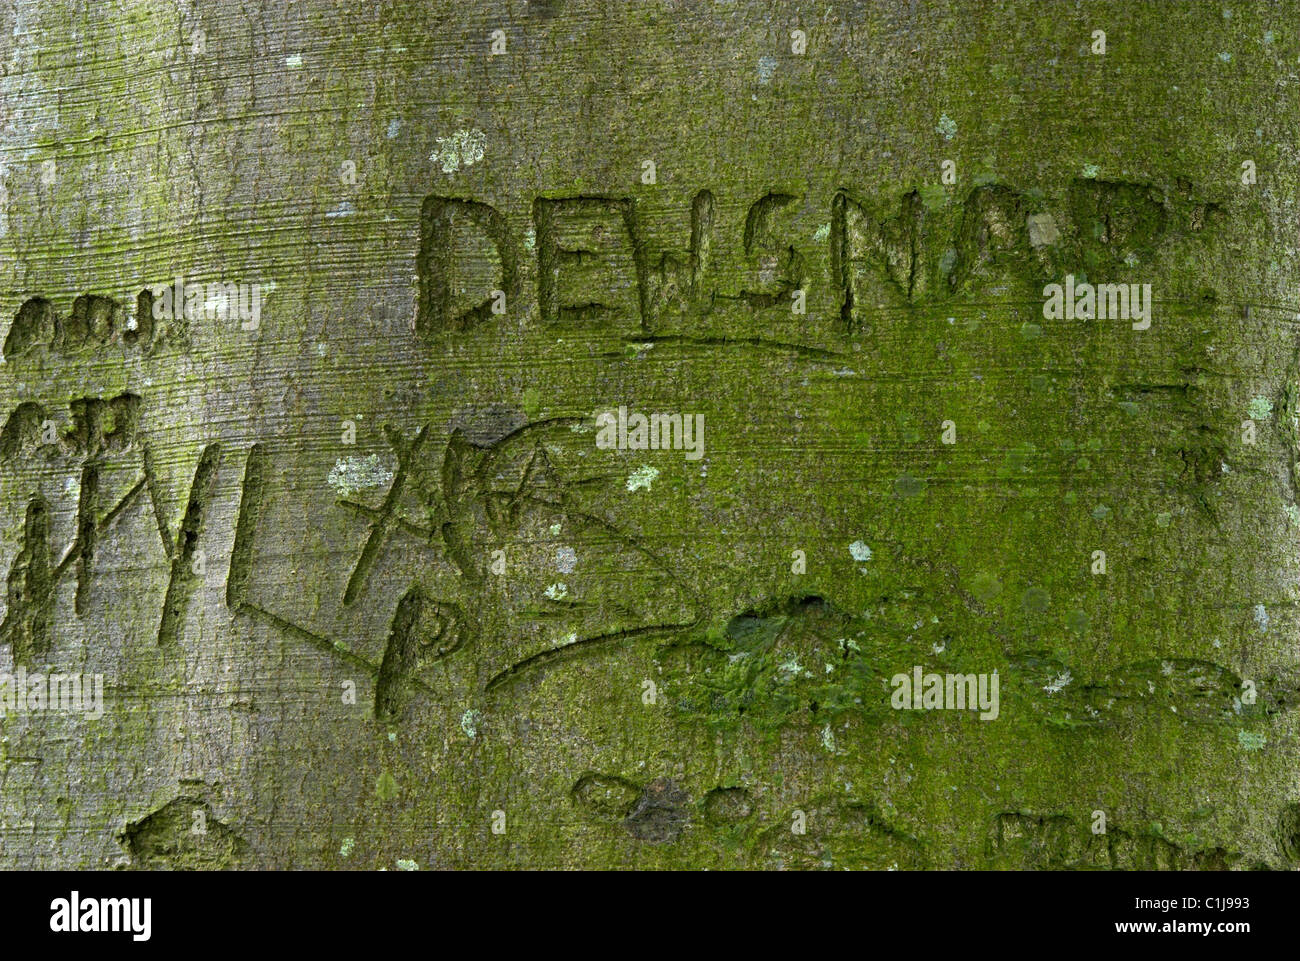 Graffiti sur un beech tree trunk photographié le 10 mai 2008, le hêtre avenue, près de Badbury Rings Photo Stock